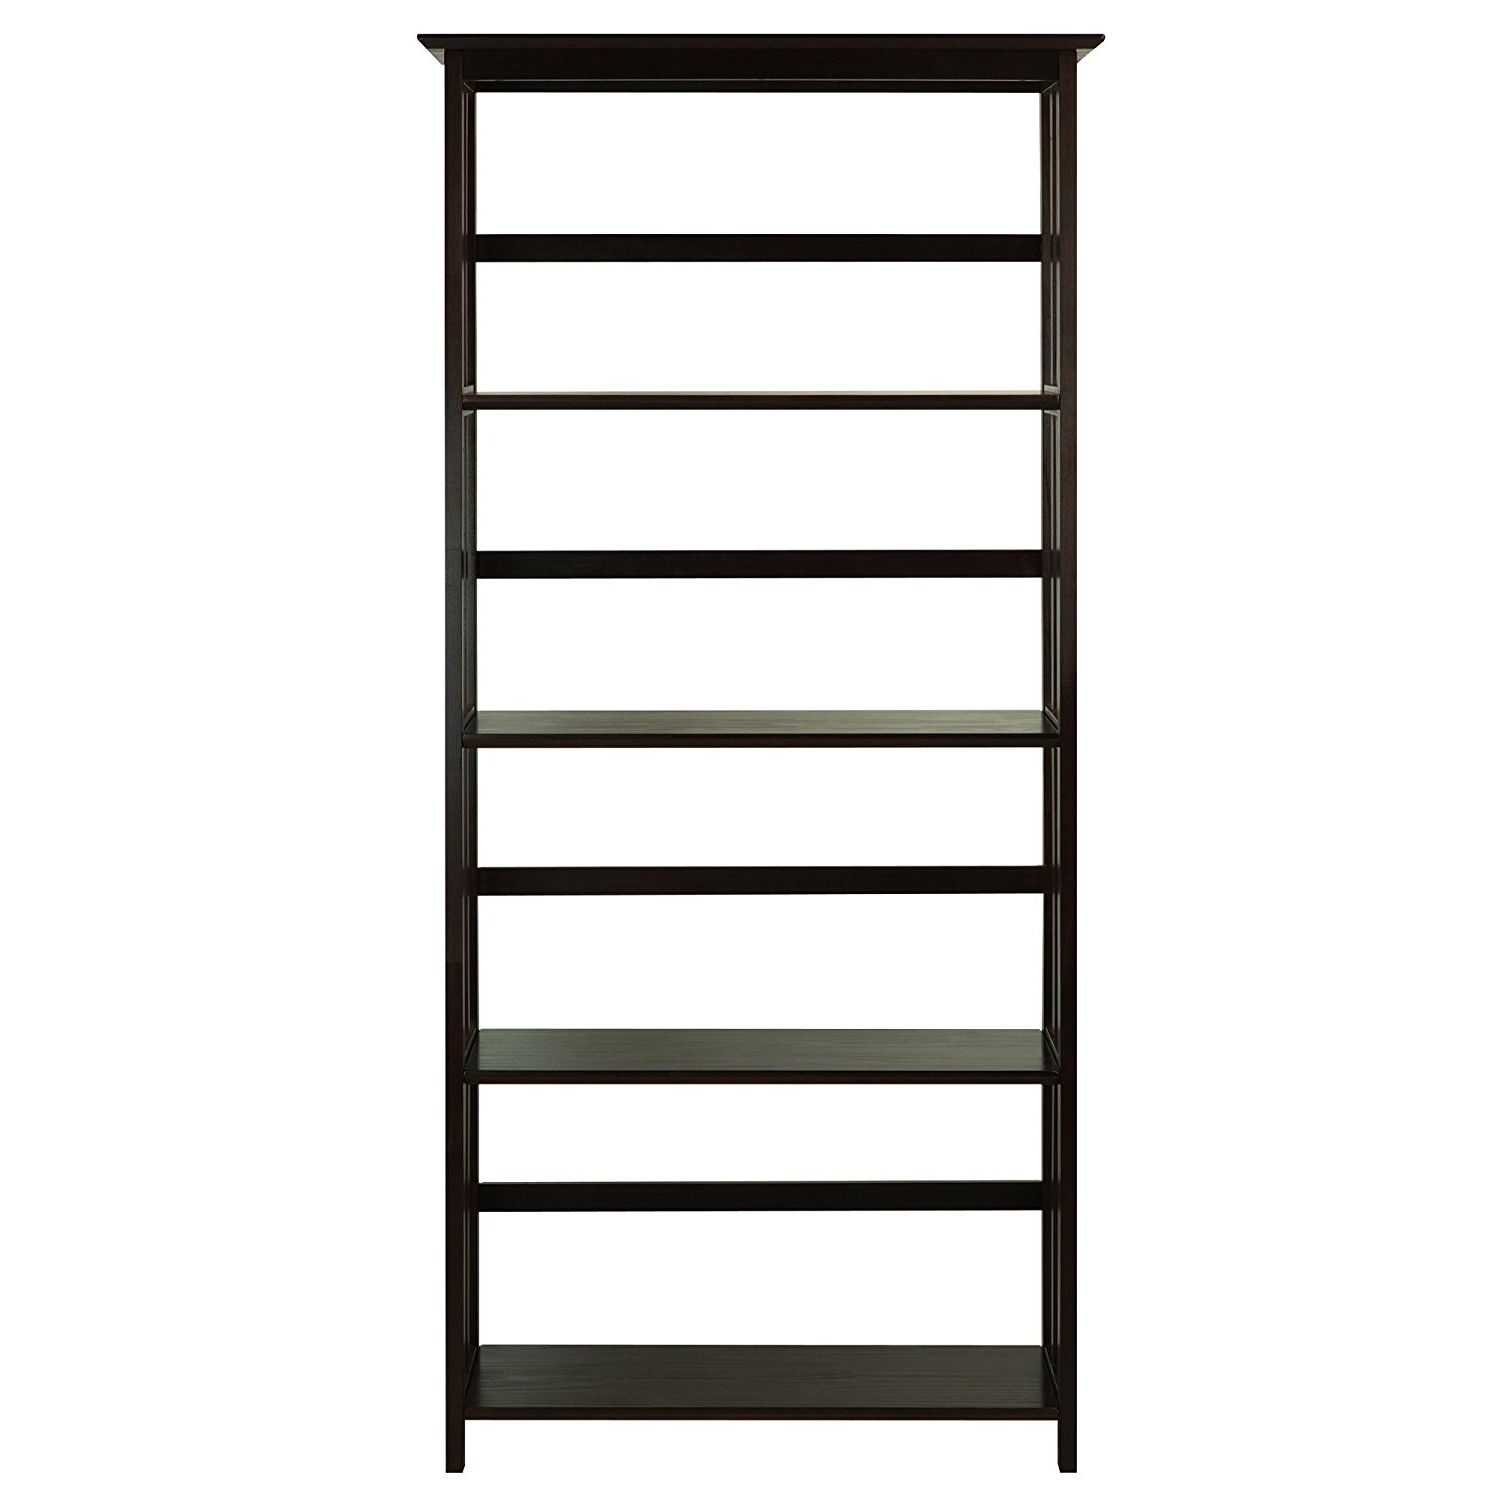 Most Recent Mission Bookcases In Amazon: Casual Home Mission Style 5 Shelf Bookcase, Espresso (View 12 of 15)